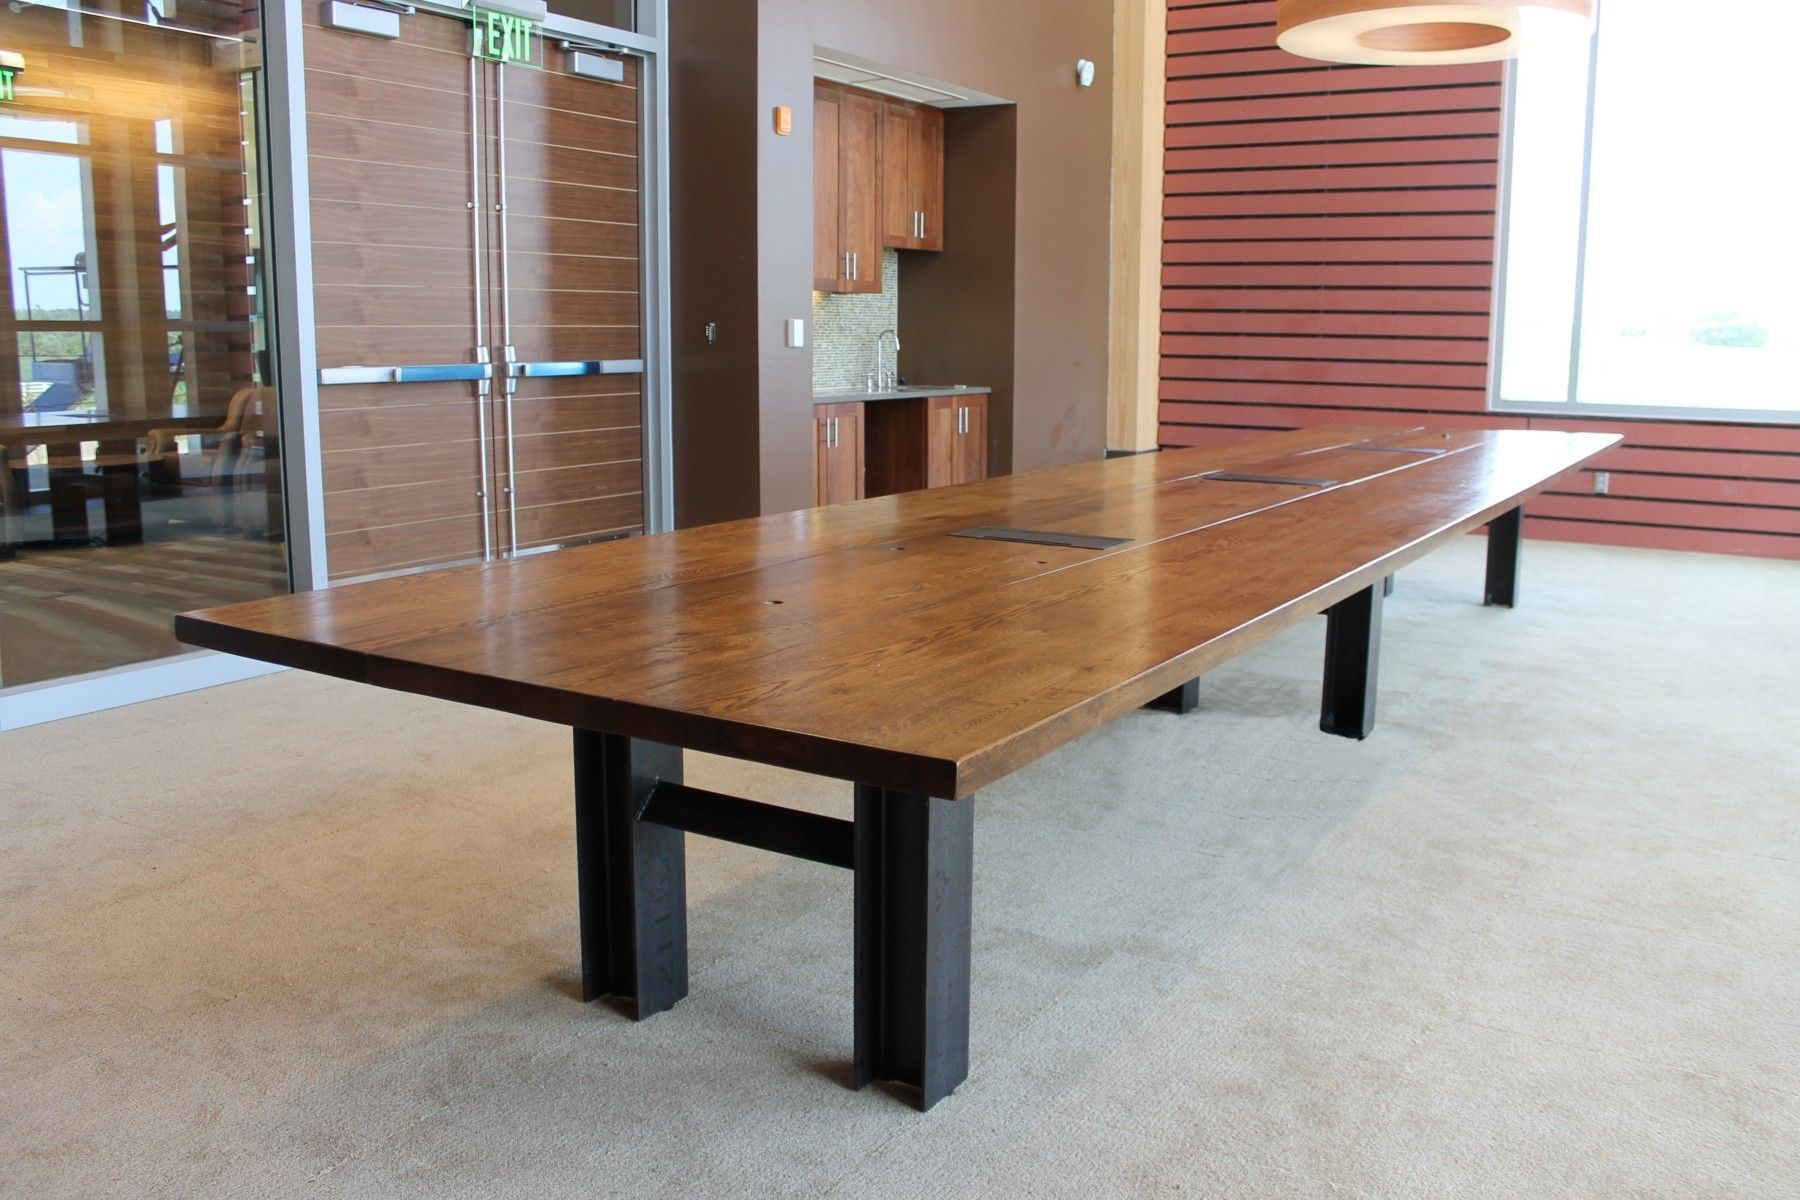 Hand Made Reclaimed Oak Custom Conference Table by  : 249300862517 from www.custommade.com size 1800 x 1200 jpeg 281kB